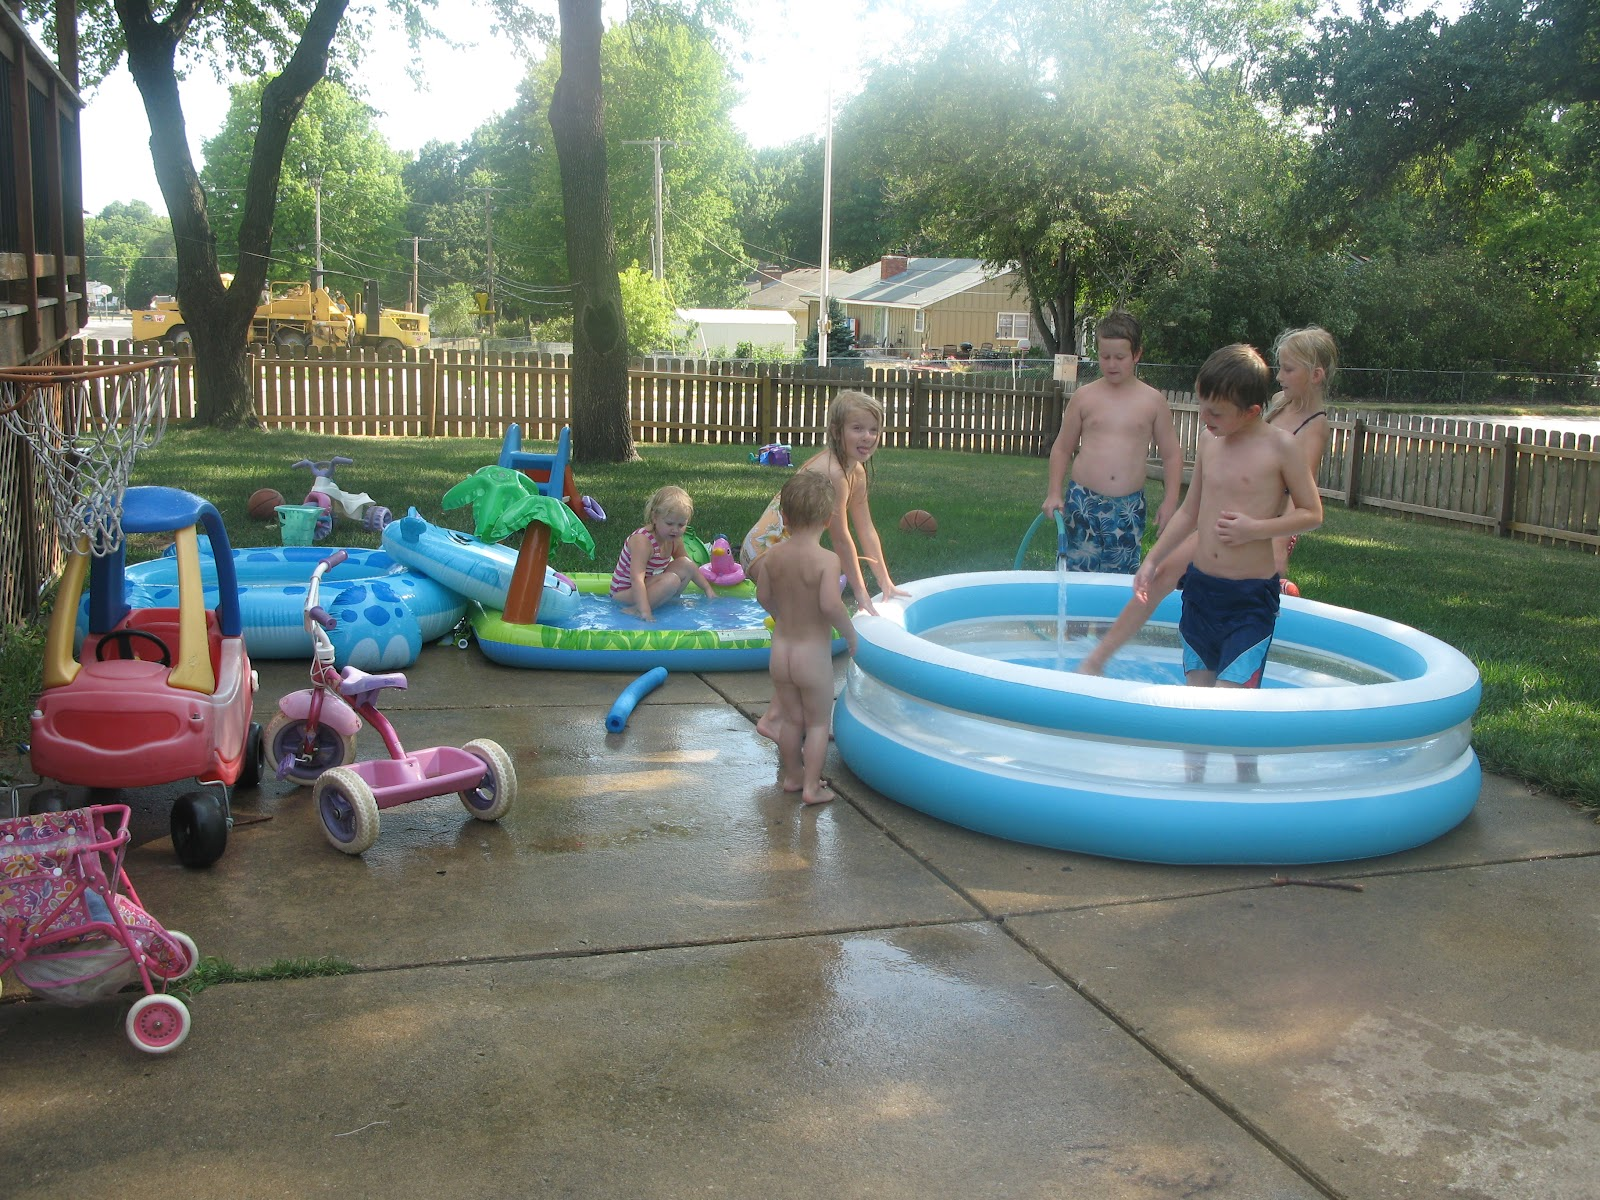 The Kerrie Show: Backyard Blow-up Pool Fun